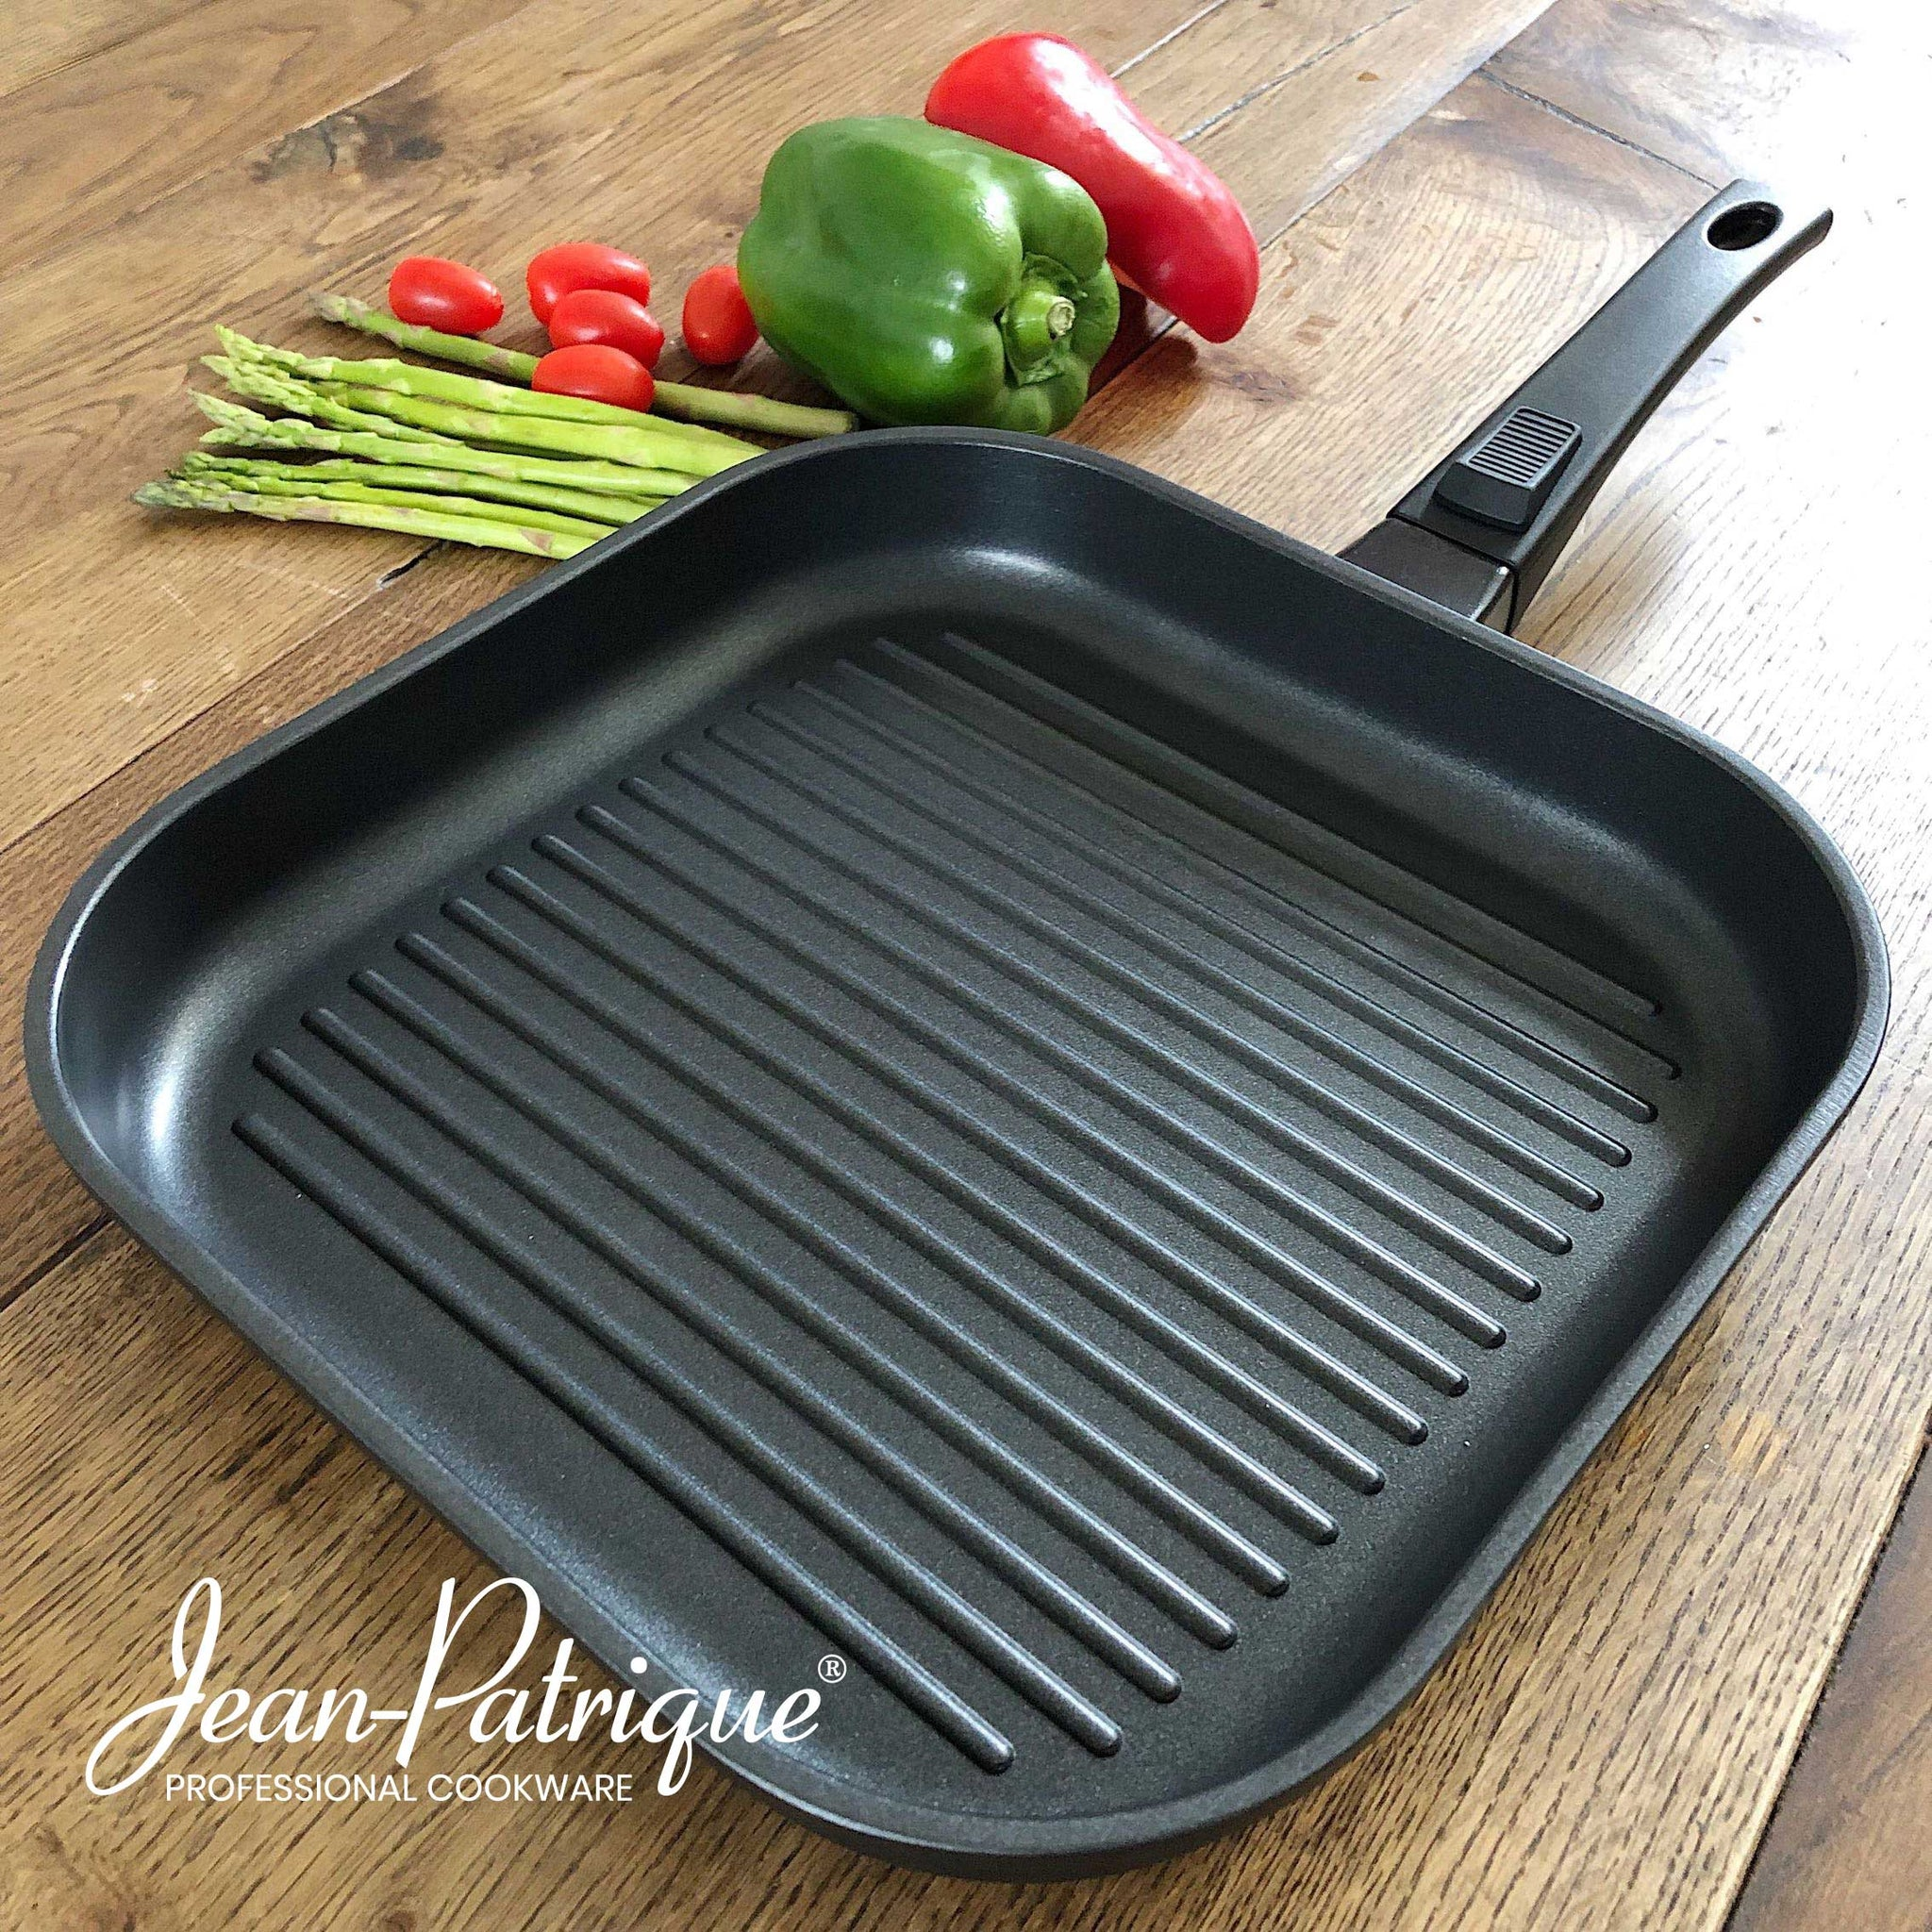 The Anything Pan - Grill Pan with Detachable Handle